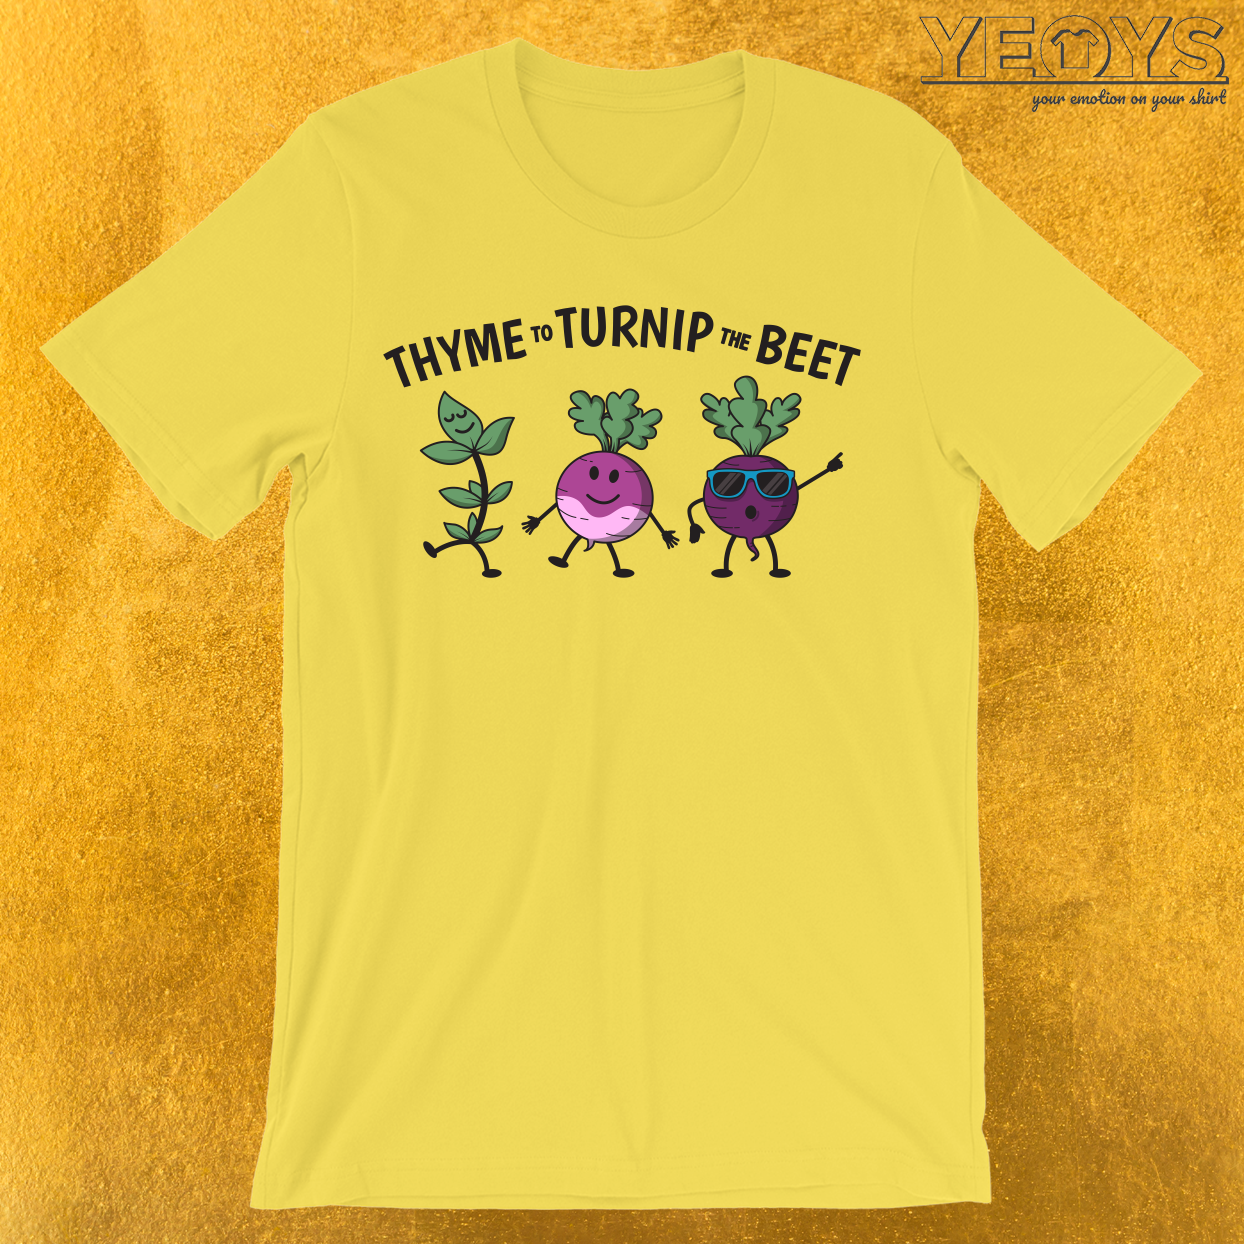 Thyme To Turnip The Beet T-Shirt